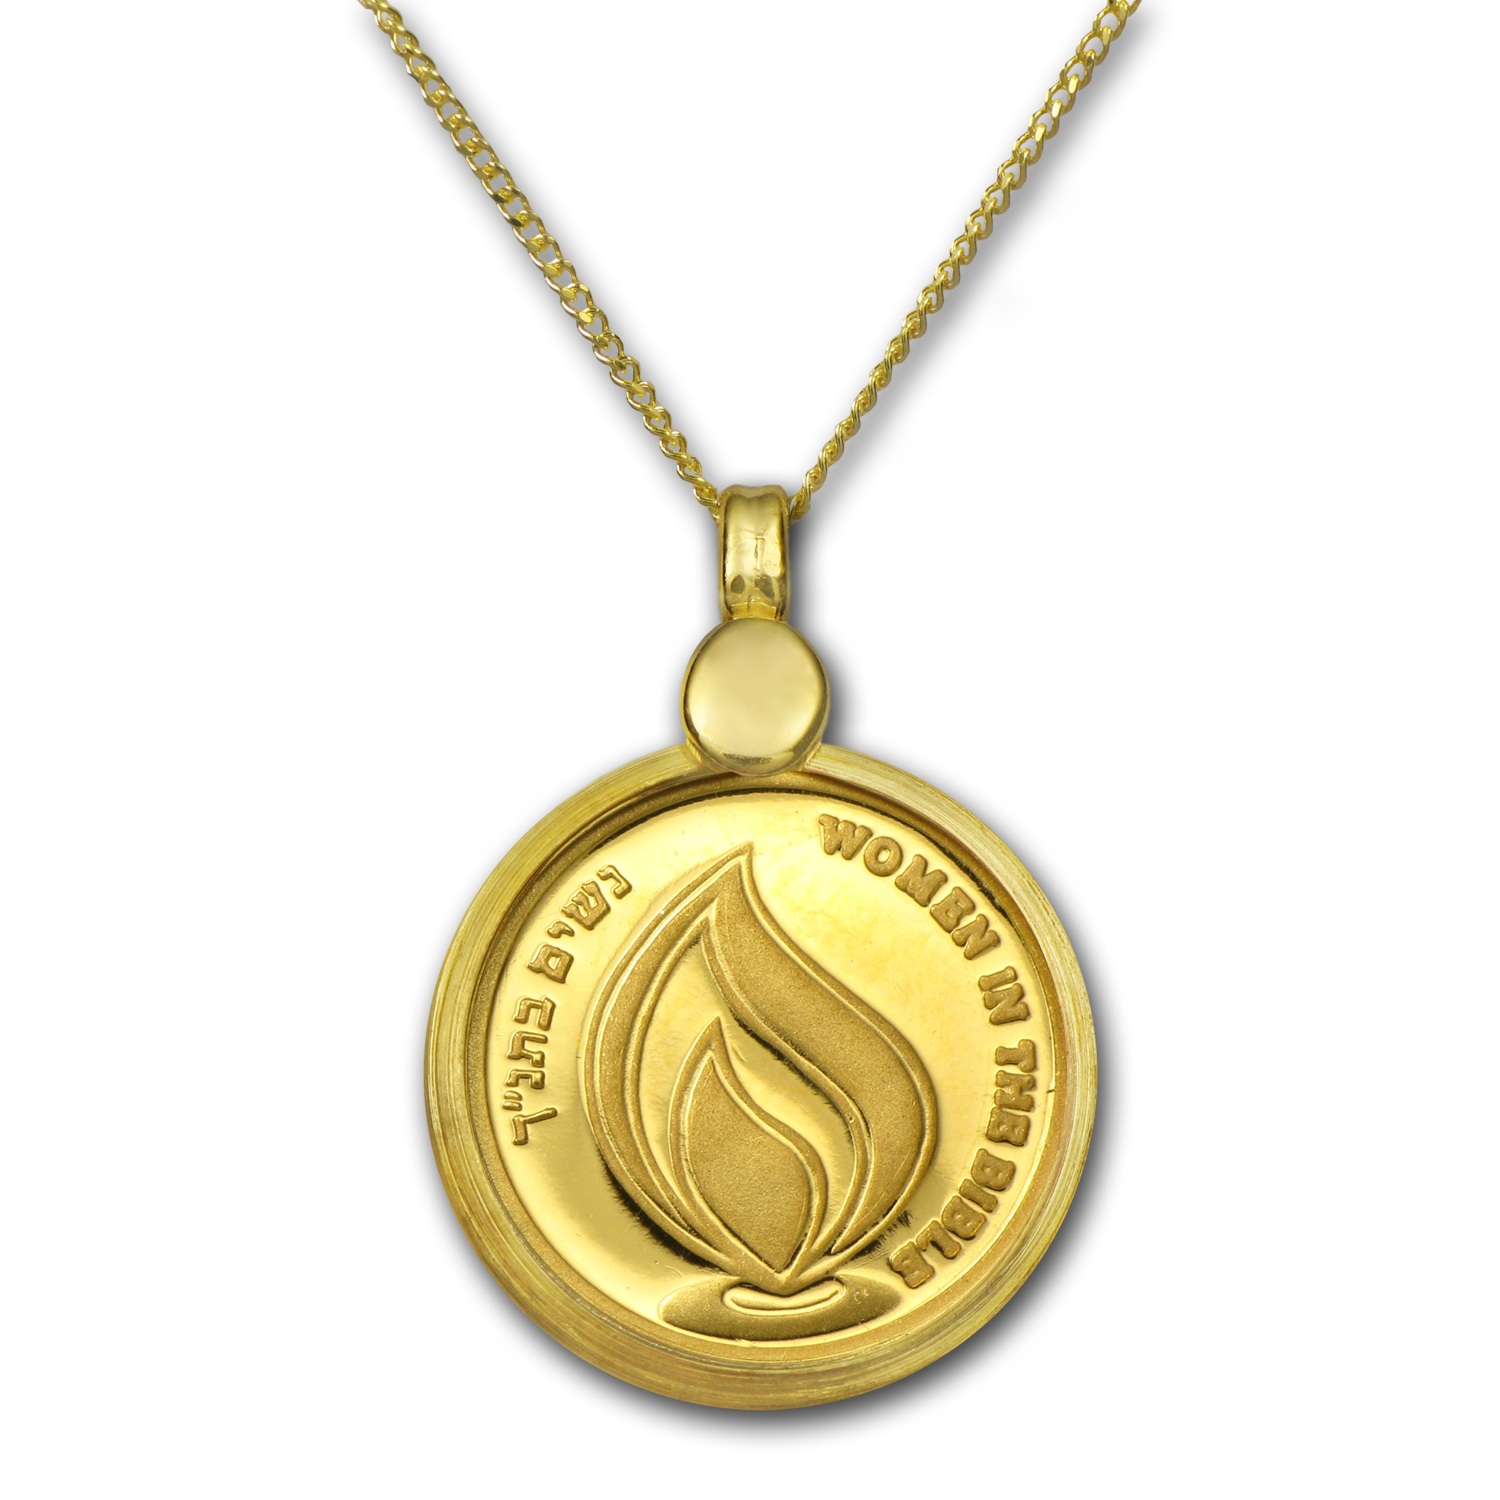 Israel Queen Esther Gold Medal with Pendant - AGW 0.0729 oz